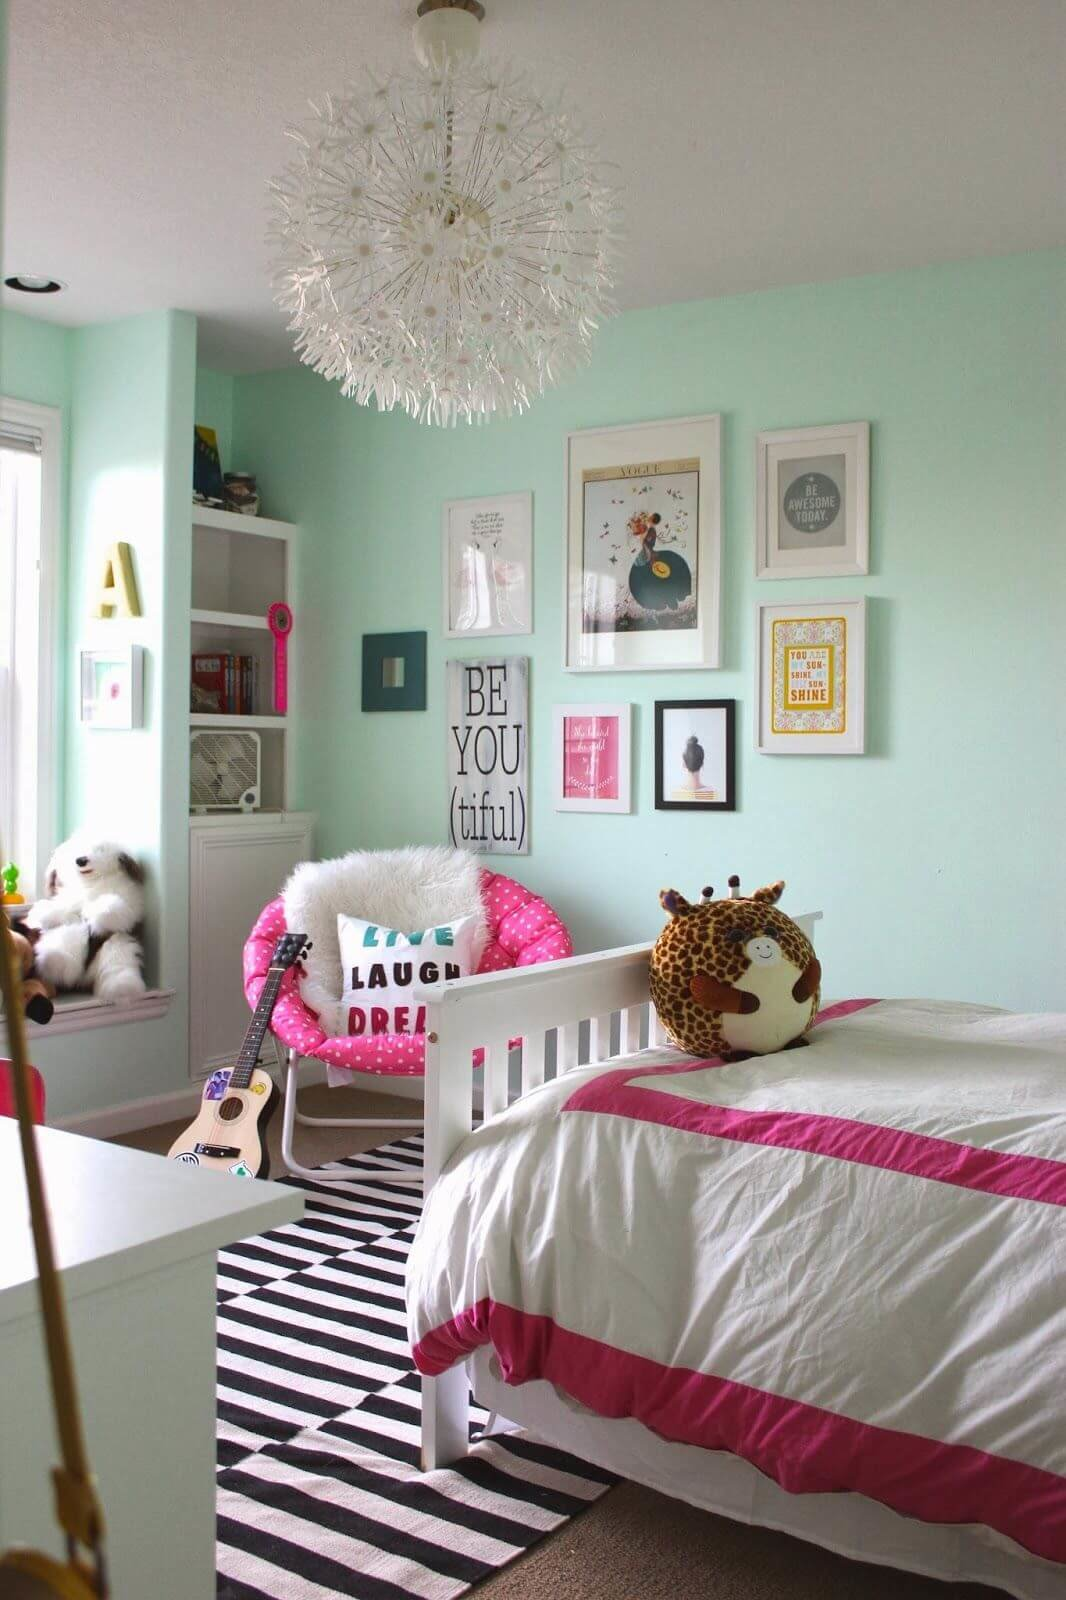 65+ Cute Teenage Girl Bedroom Ideas That Will Blow Your Mind on Girls Bedroom Ideas  id=84703